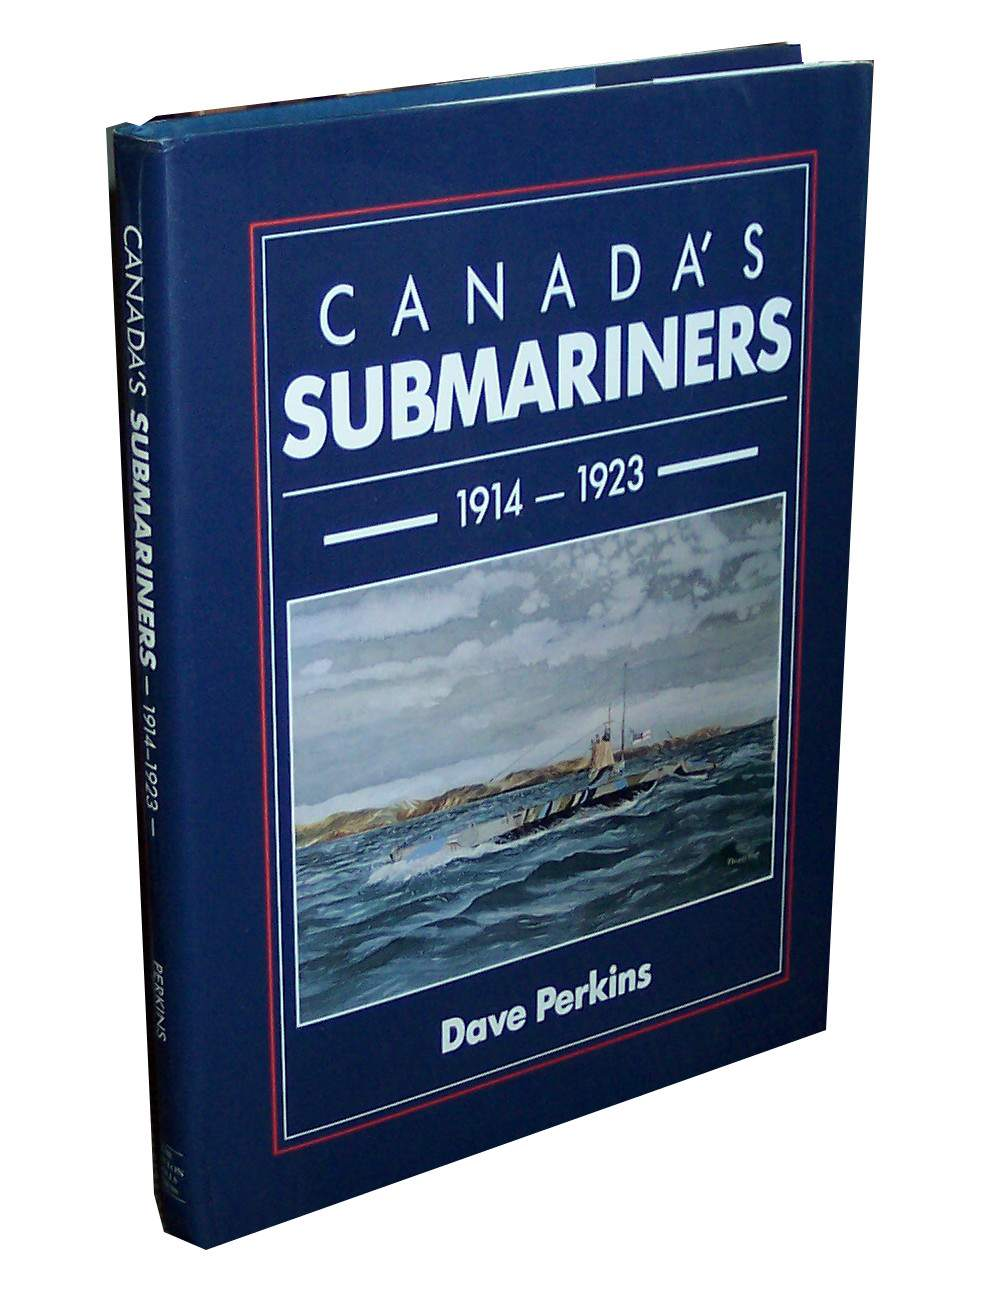 Image for Canada's Submariners 1914 - 1923